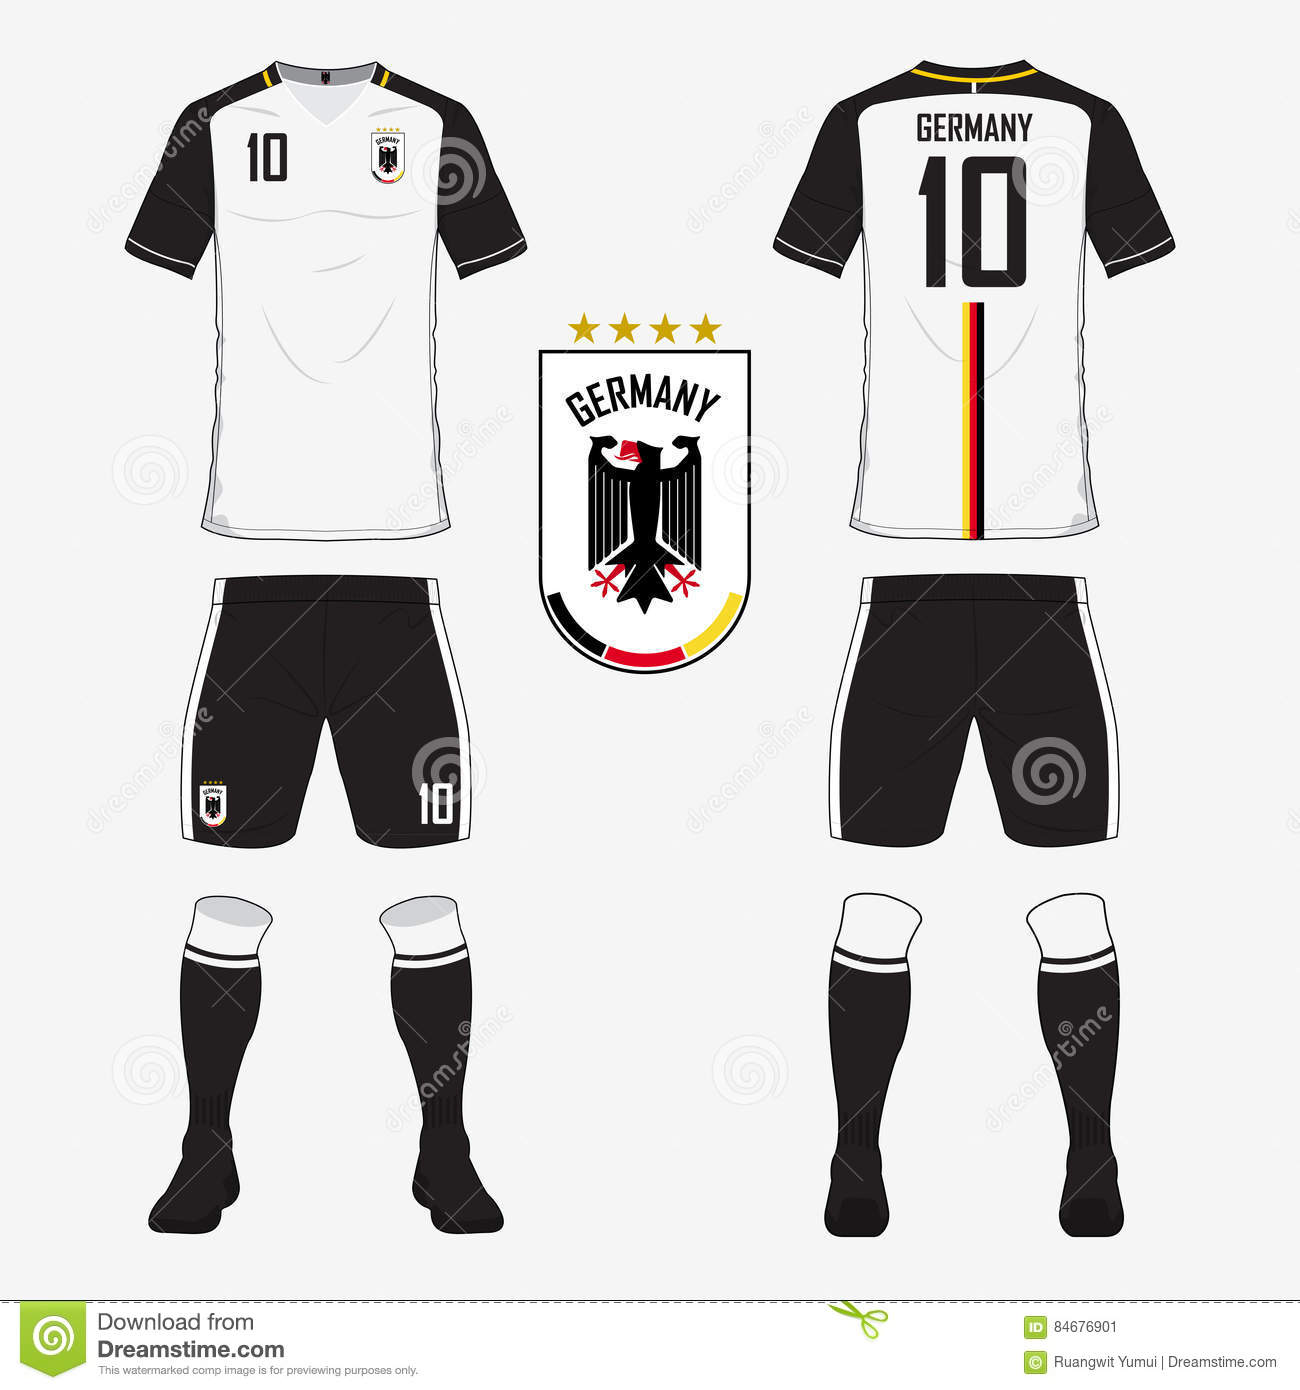 Soccer jersey or football kit template for Germany national football team. f7ba947f6